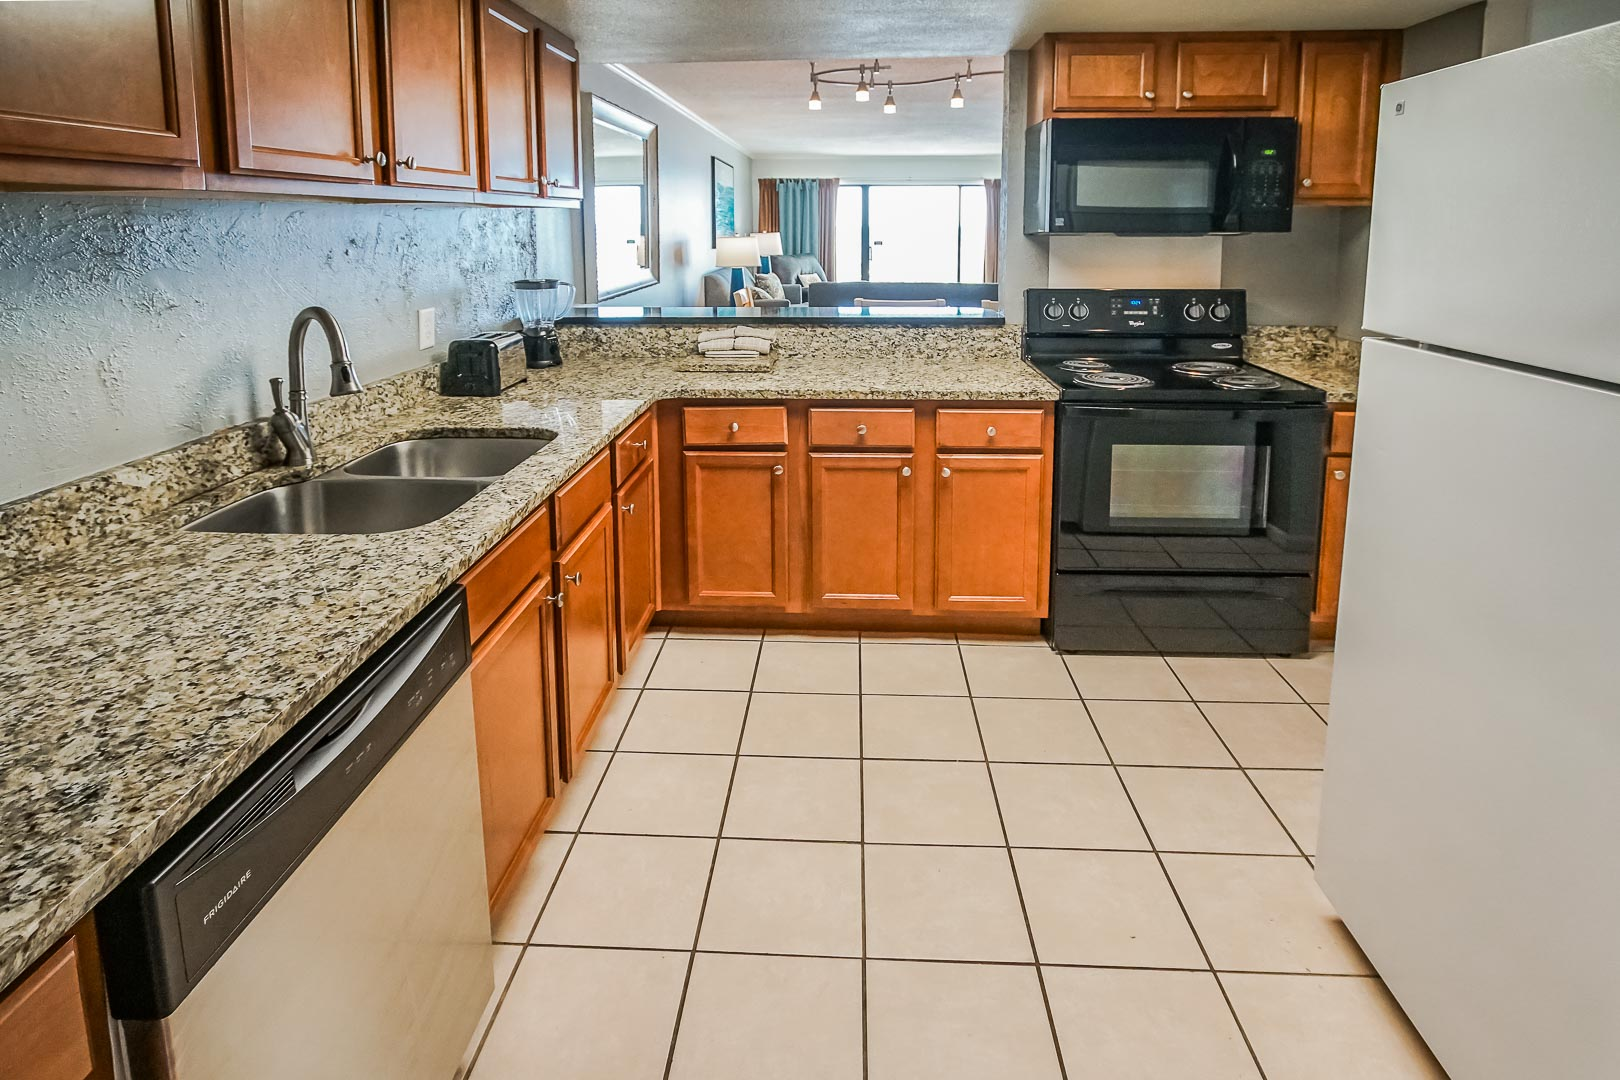 A fully equipped kitchen at VRI's Shoreline Towers in Gulf Shores, Alabama.